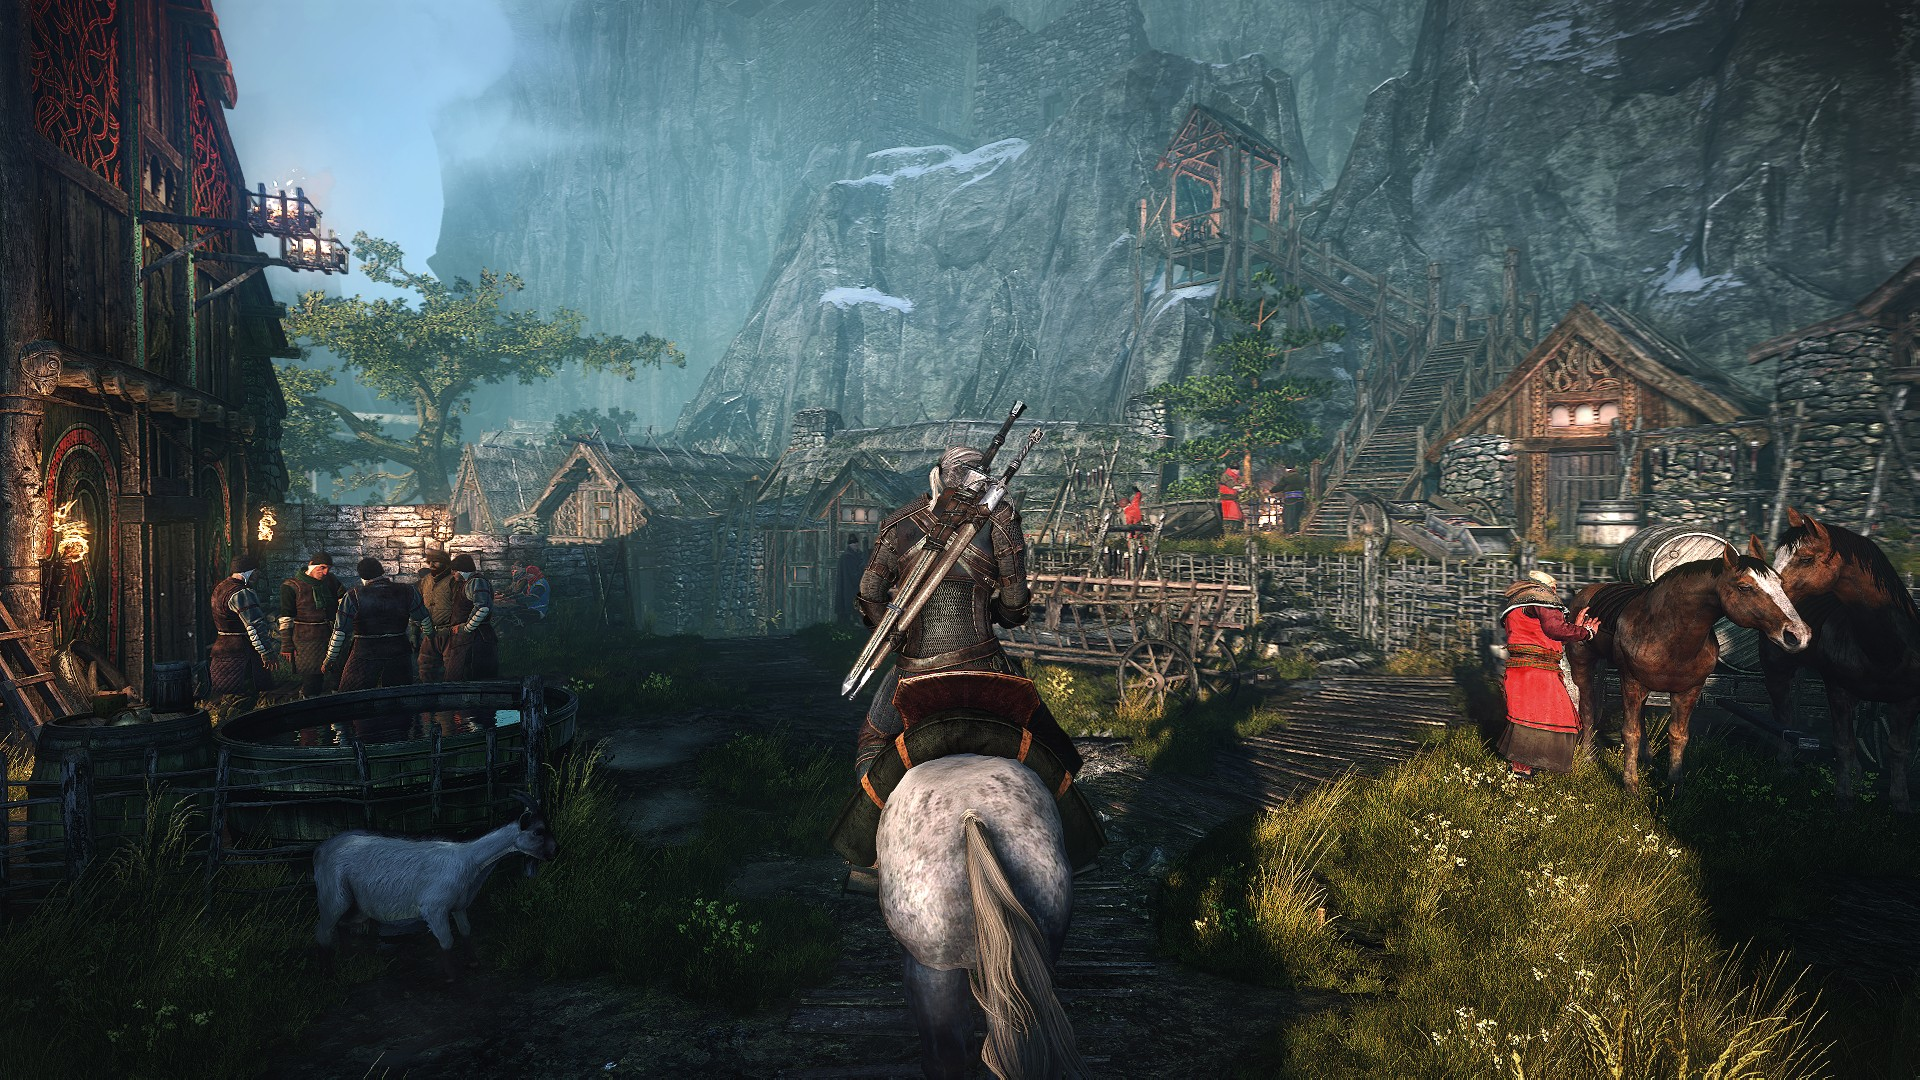 RPG Review: The Witcher 3: Wild Hunt